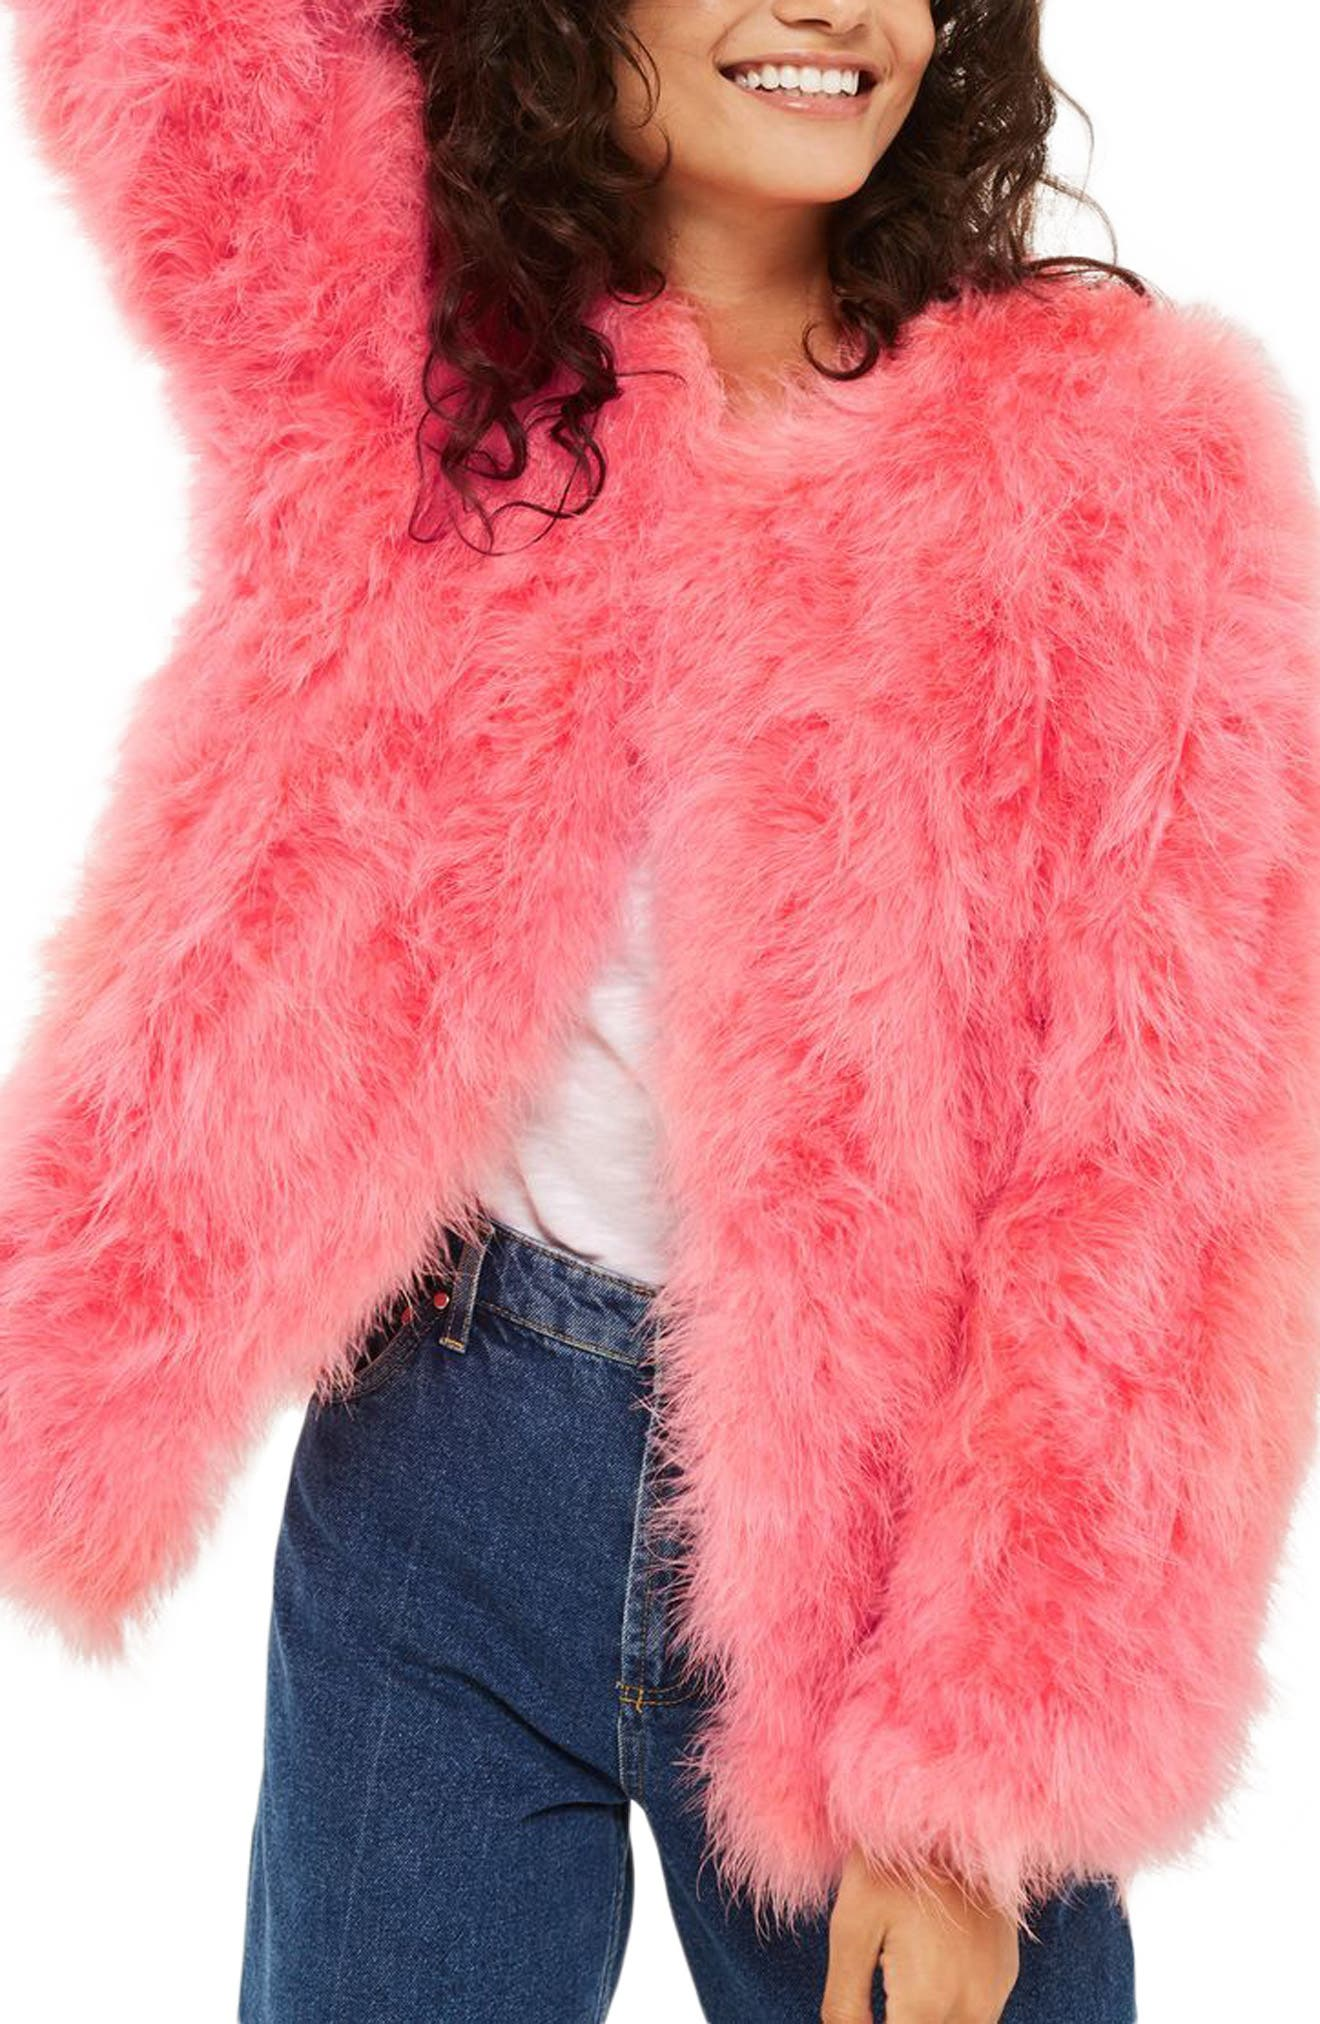 Marabou Feather Jacket,                             Alternate thumbnail 3, color,                             Pink